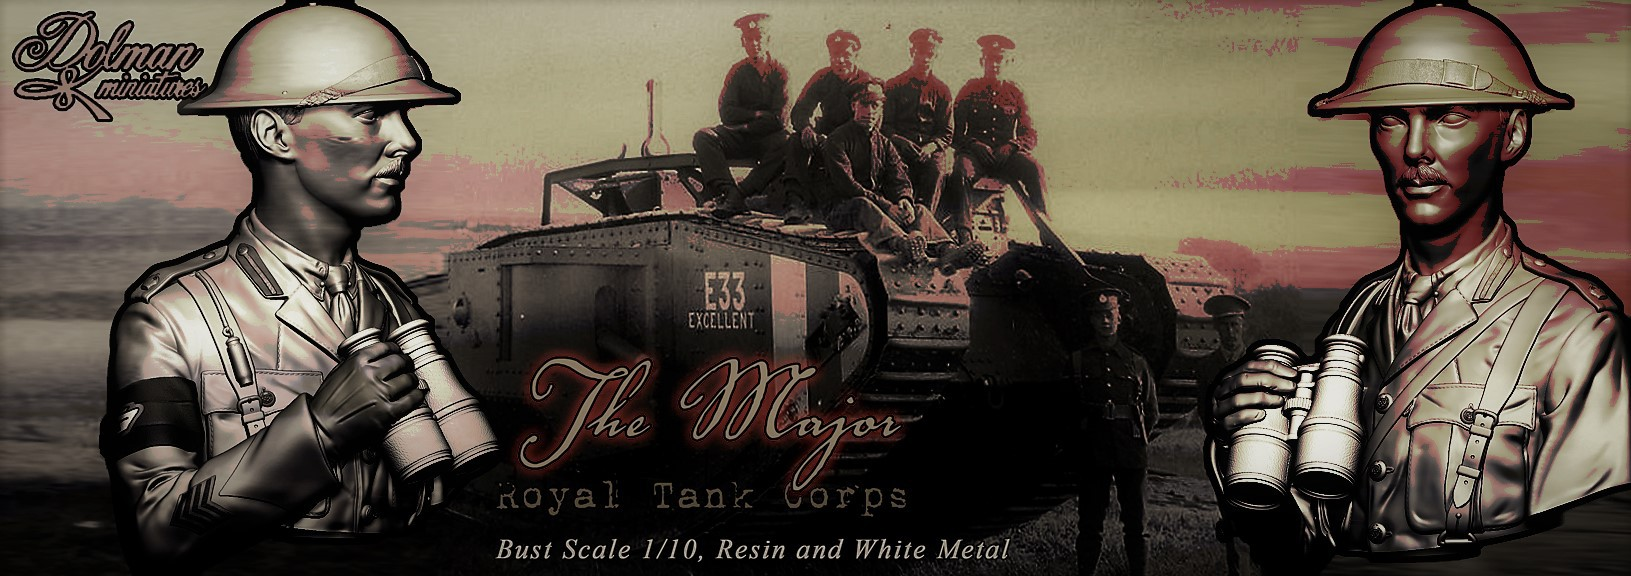 Royal Tank Corps.WW I